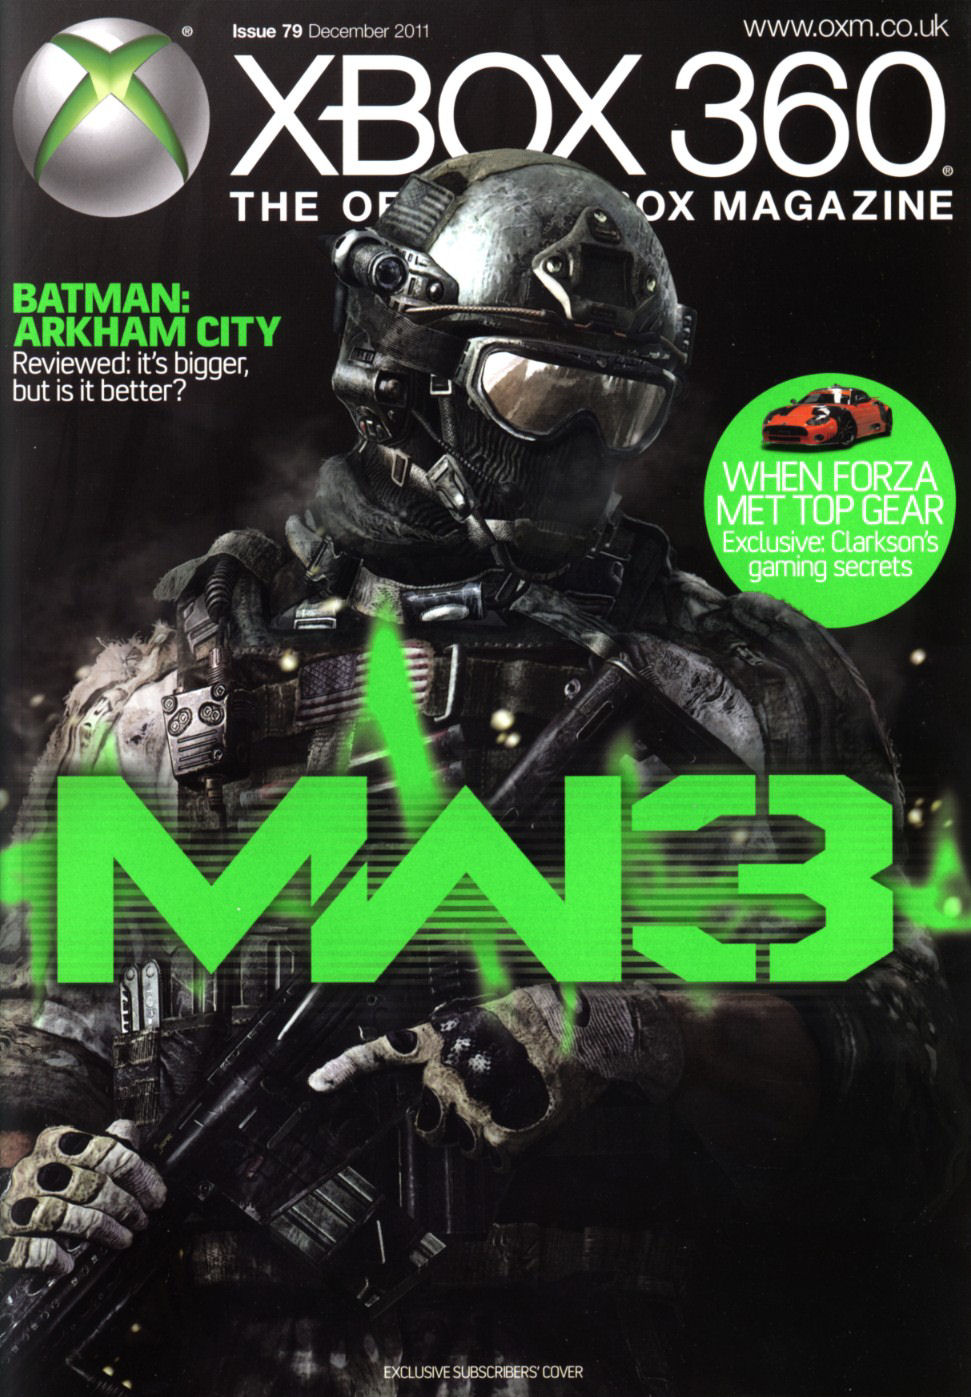 Xbox 360: The Official Xbox Magazine Issue 79   Magazines from the ...